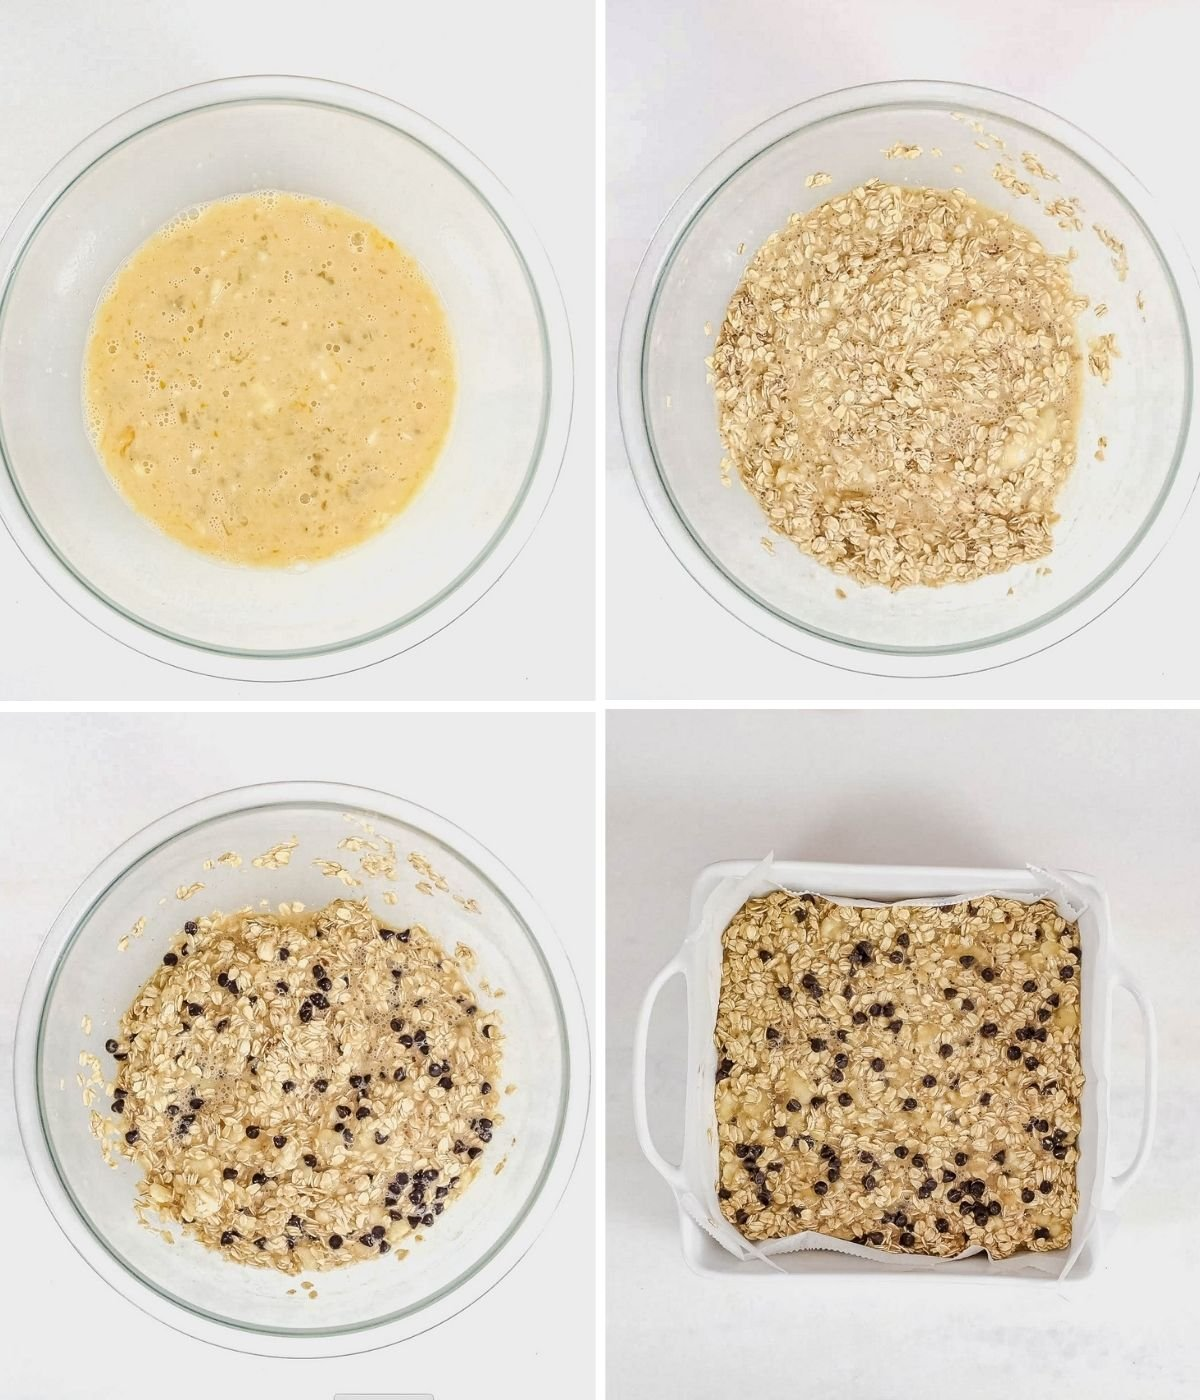 step by step images showing how to make banana baked oatmeal with one bowl showing the wet ingredients, one showing the oatmeal added, one with chocolate chips and the batter in a square dish before being baked